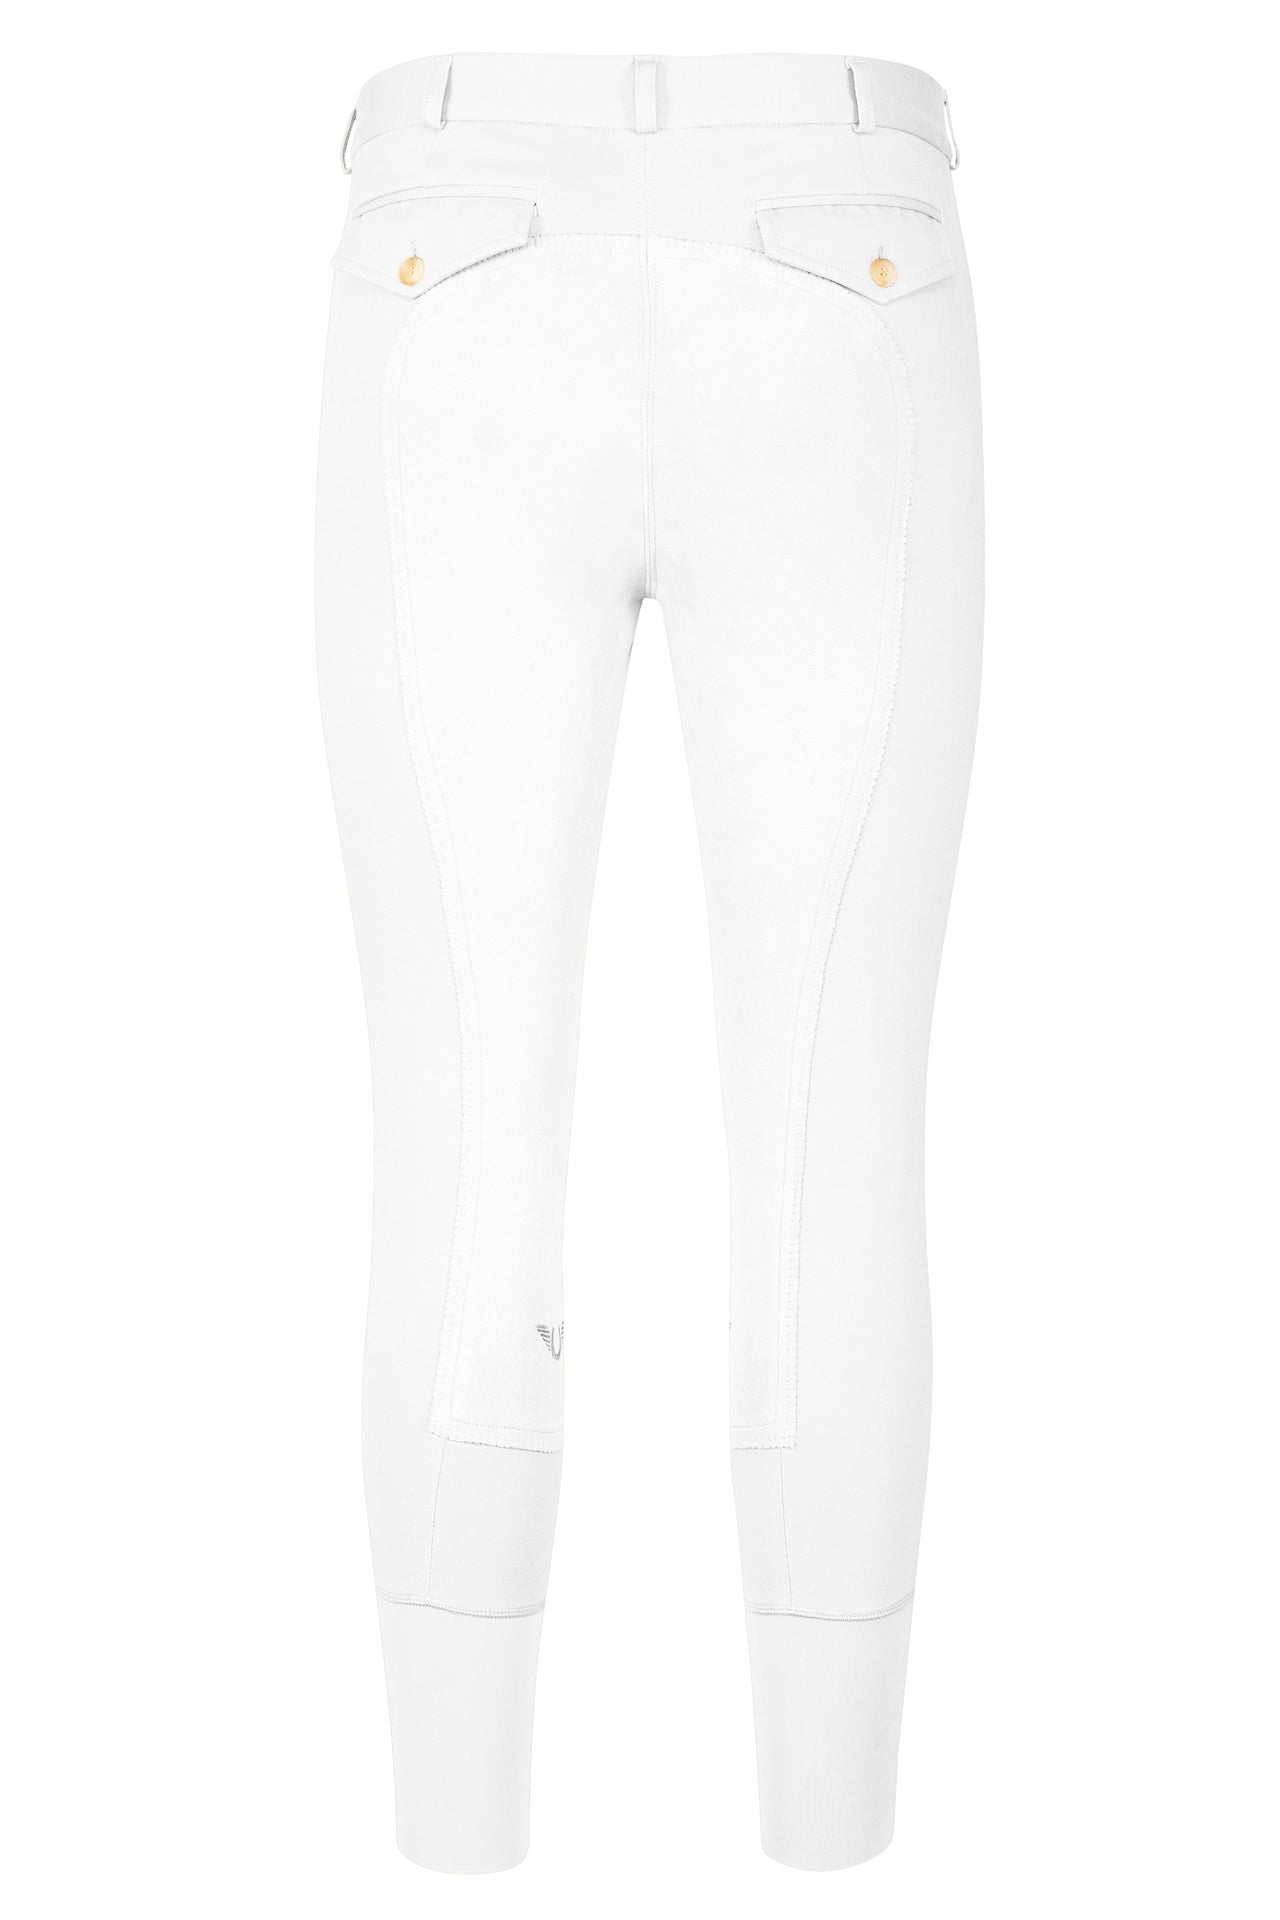 TuffRider Men's Full Seat Patrol Breeches - TuffRider - Breeches.com